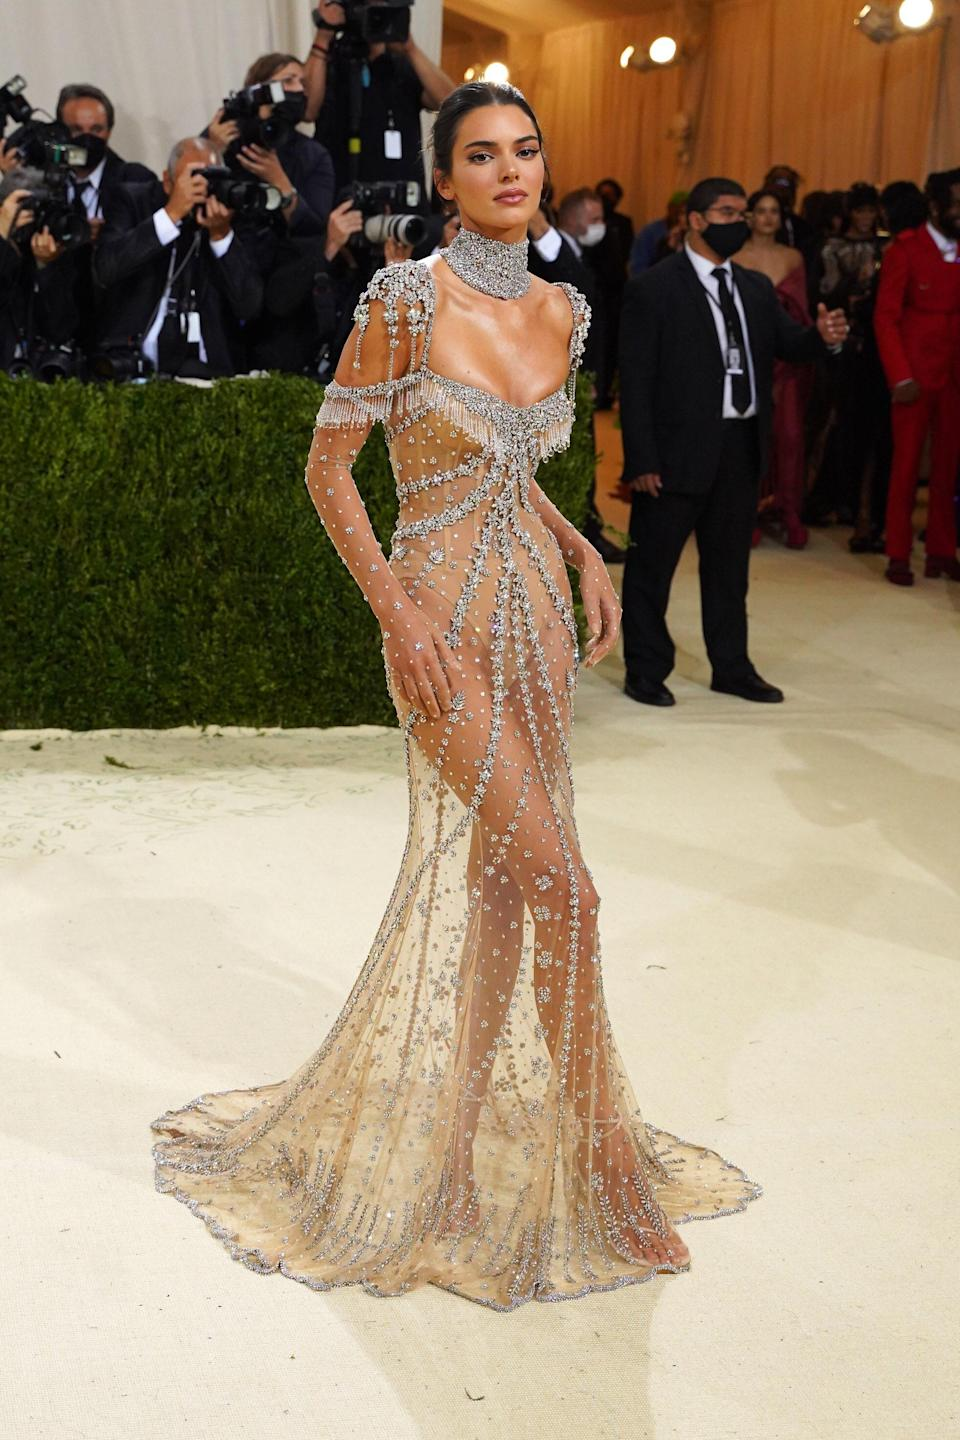 Kendall graced the carpet in a bejeweled Givenchy dress designed by American creative director Matthew Williams. The look was created as an homage to Audrey Hepburn.